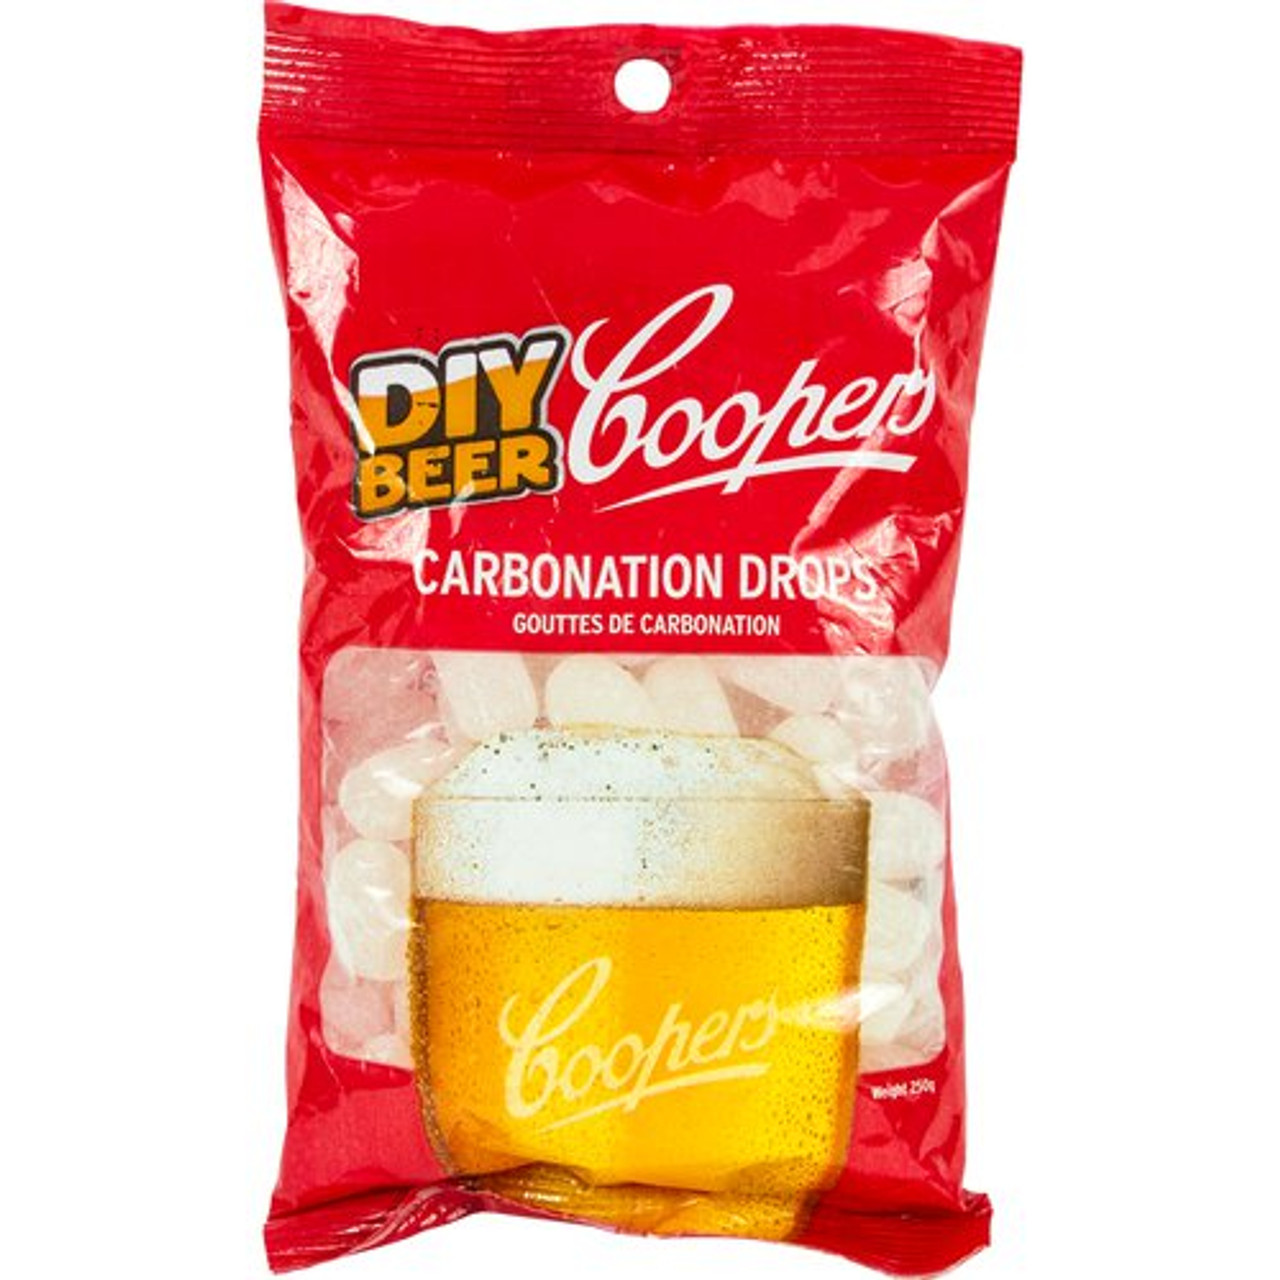 coopers carbonation drops for beer